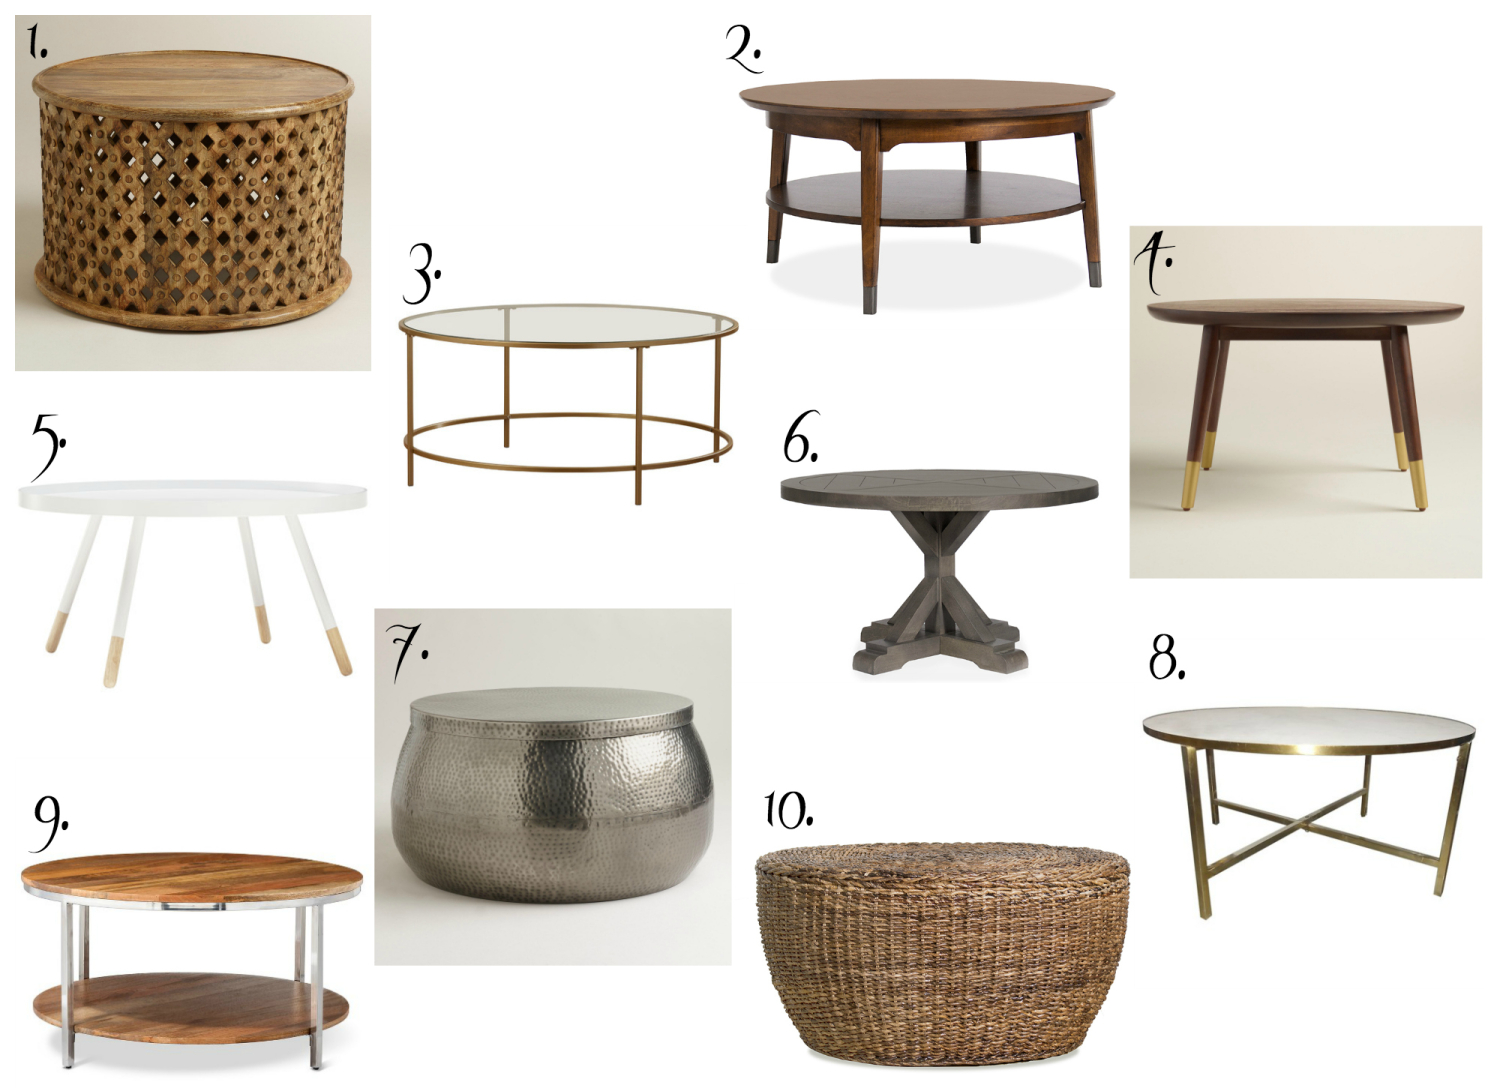 Ten affordable round coffee tables, all gorgeous and all under $300!